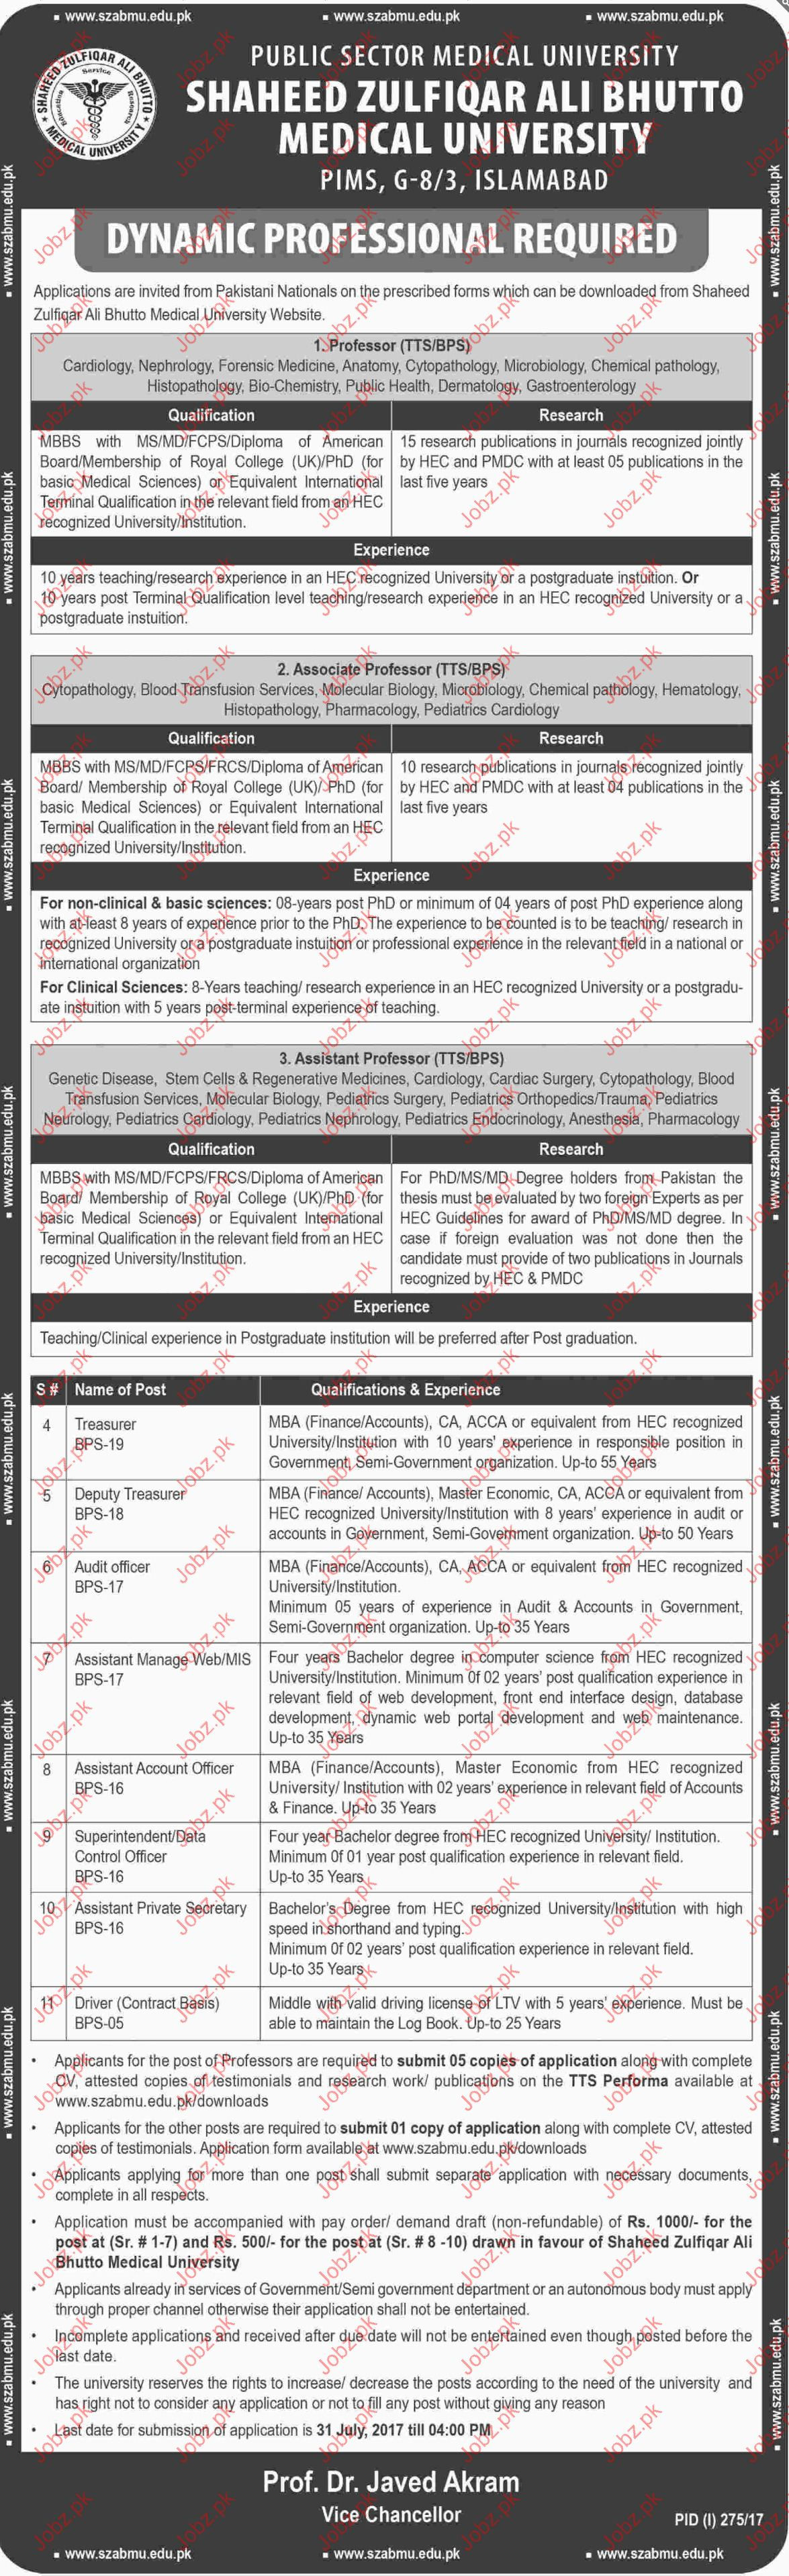 Director jobs In Ministry Of Planning Development & Reform